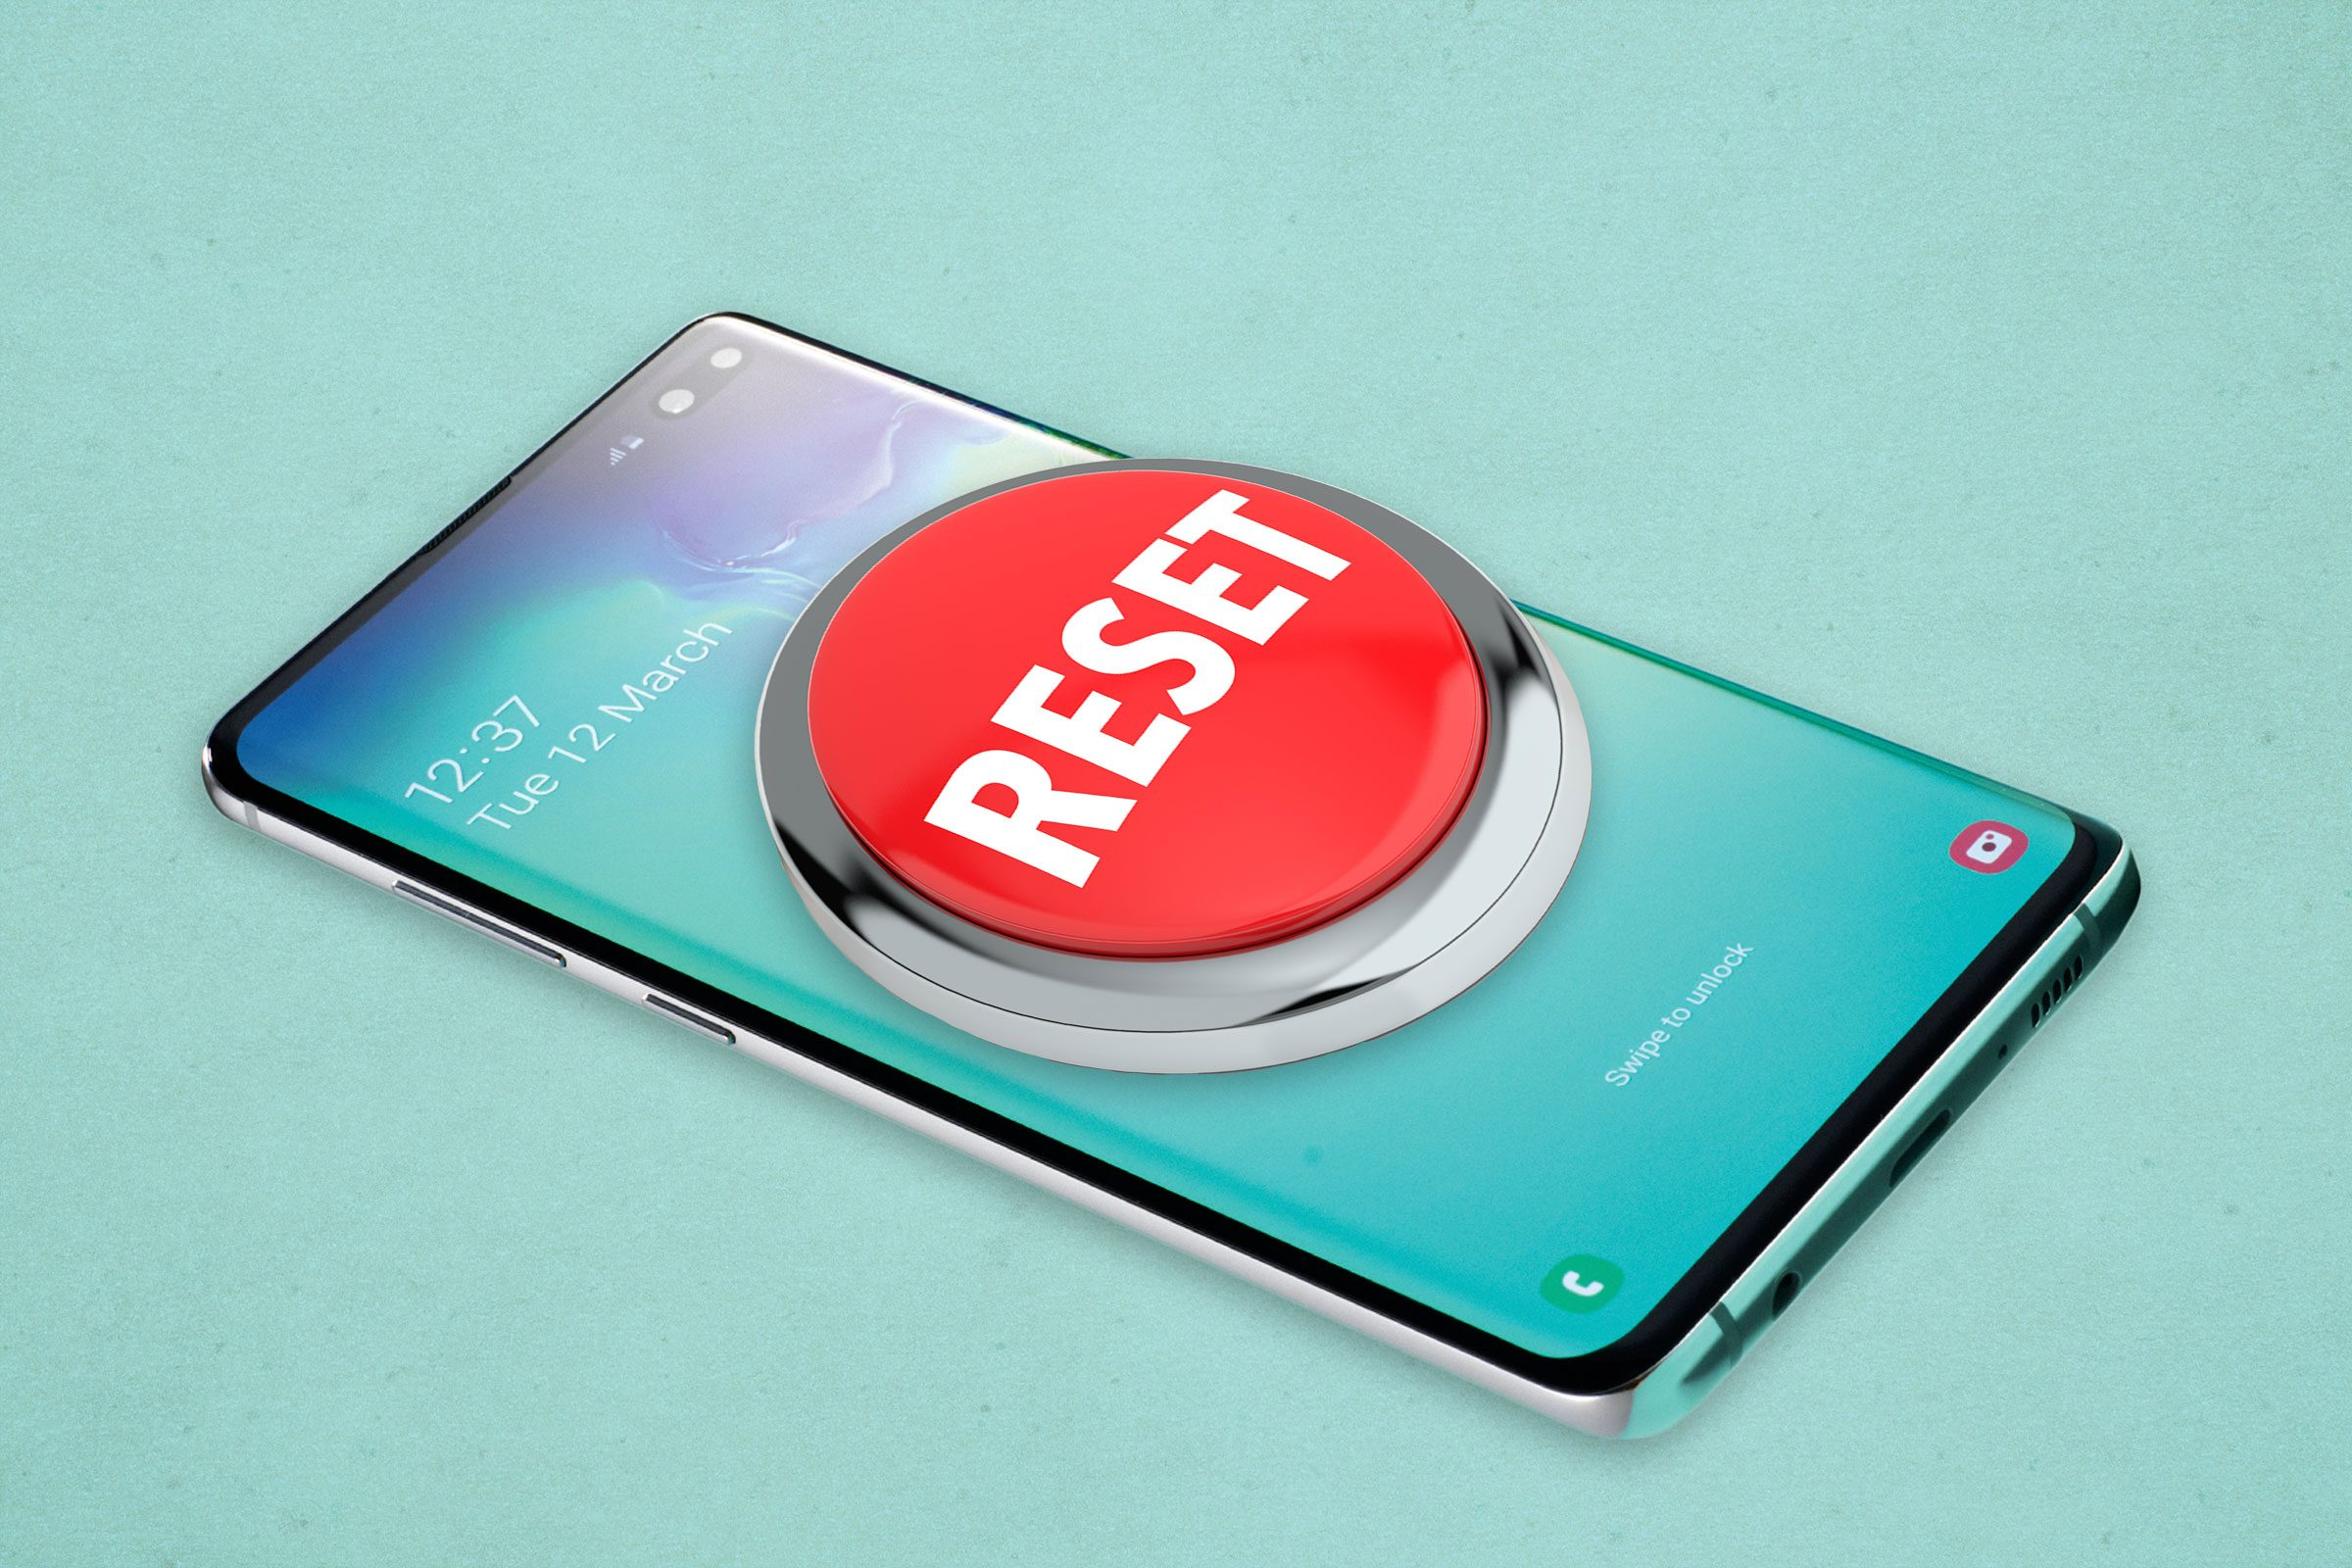 Reset button on top of android phone to symbolize factory reset